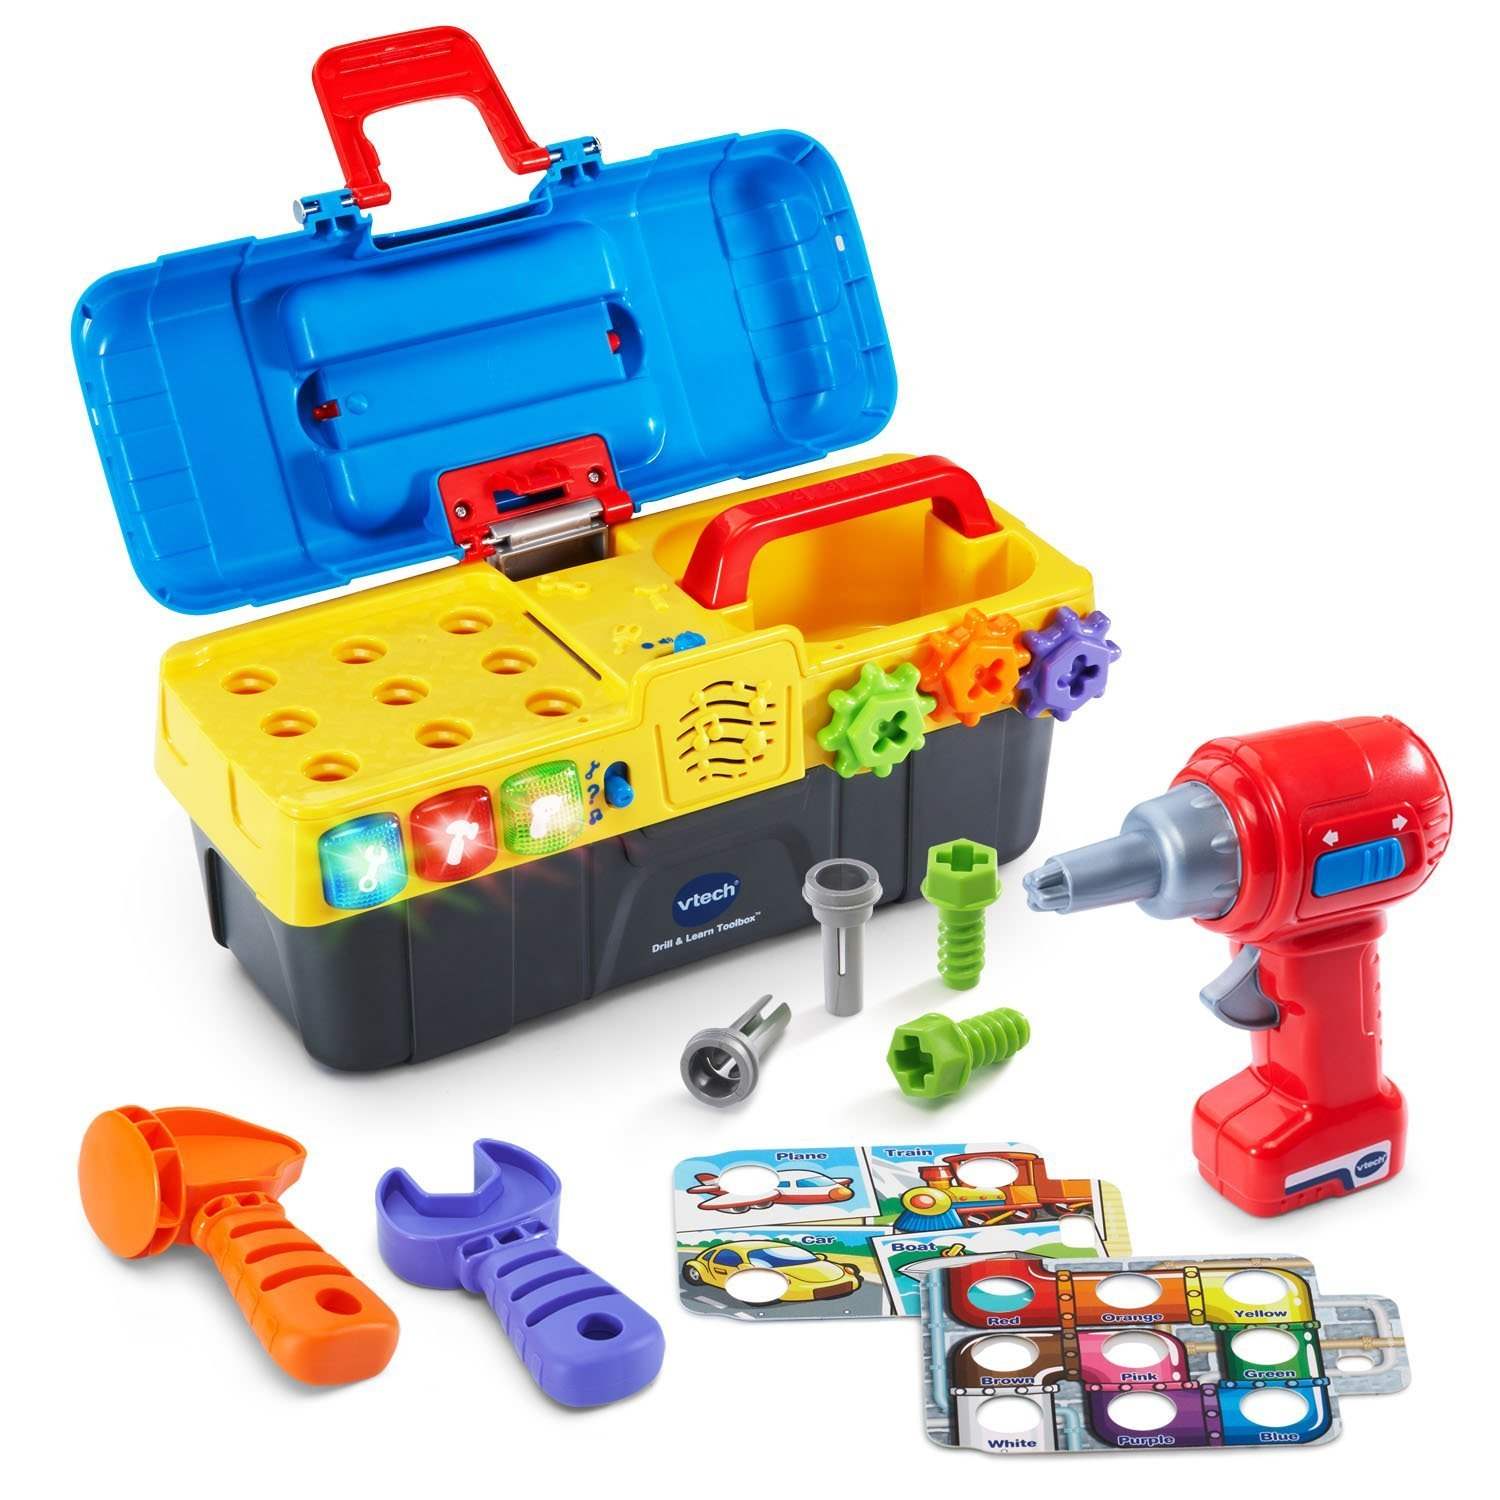 Vtech My 1st Tool Box Drill and Learn Best Educational Infant